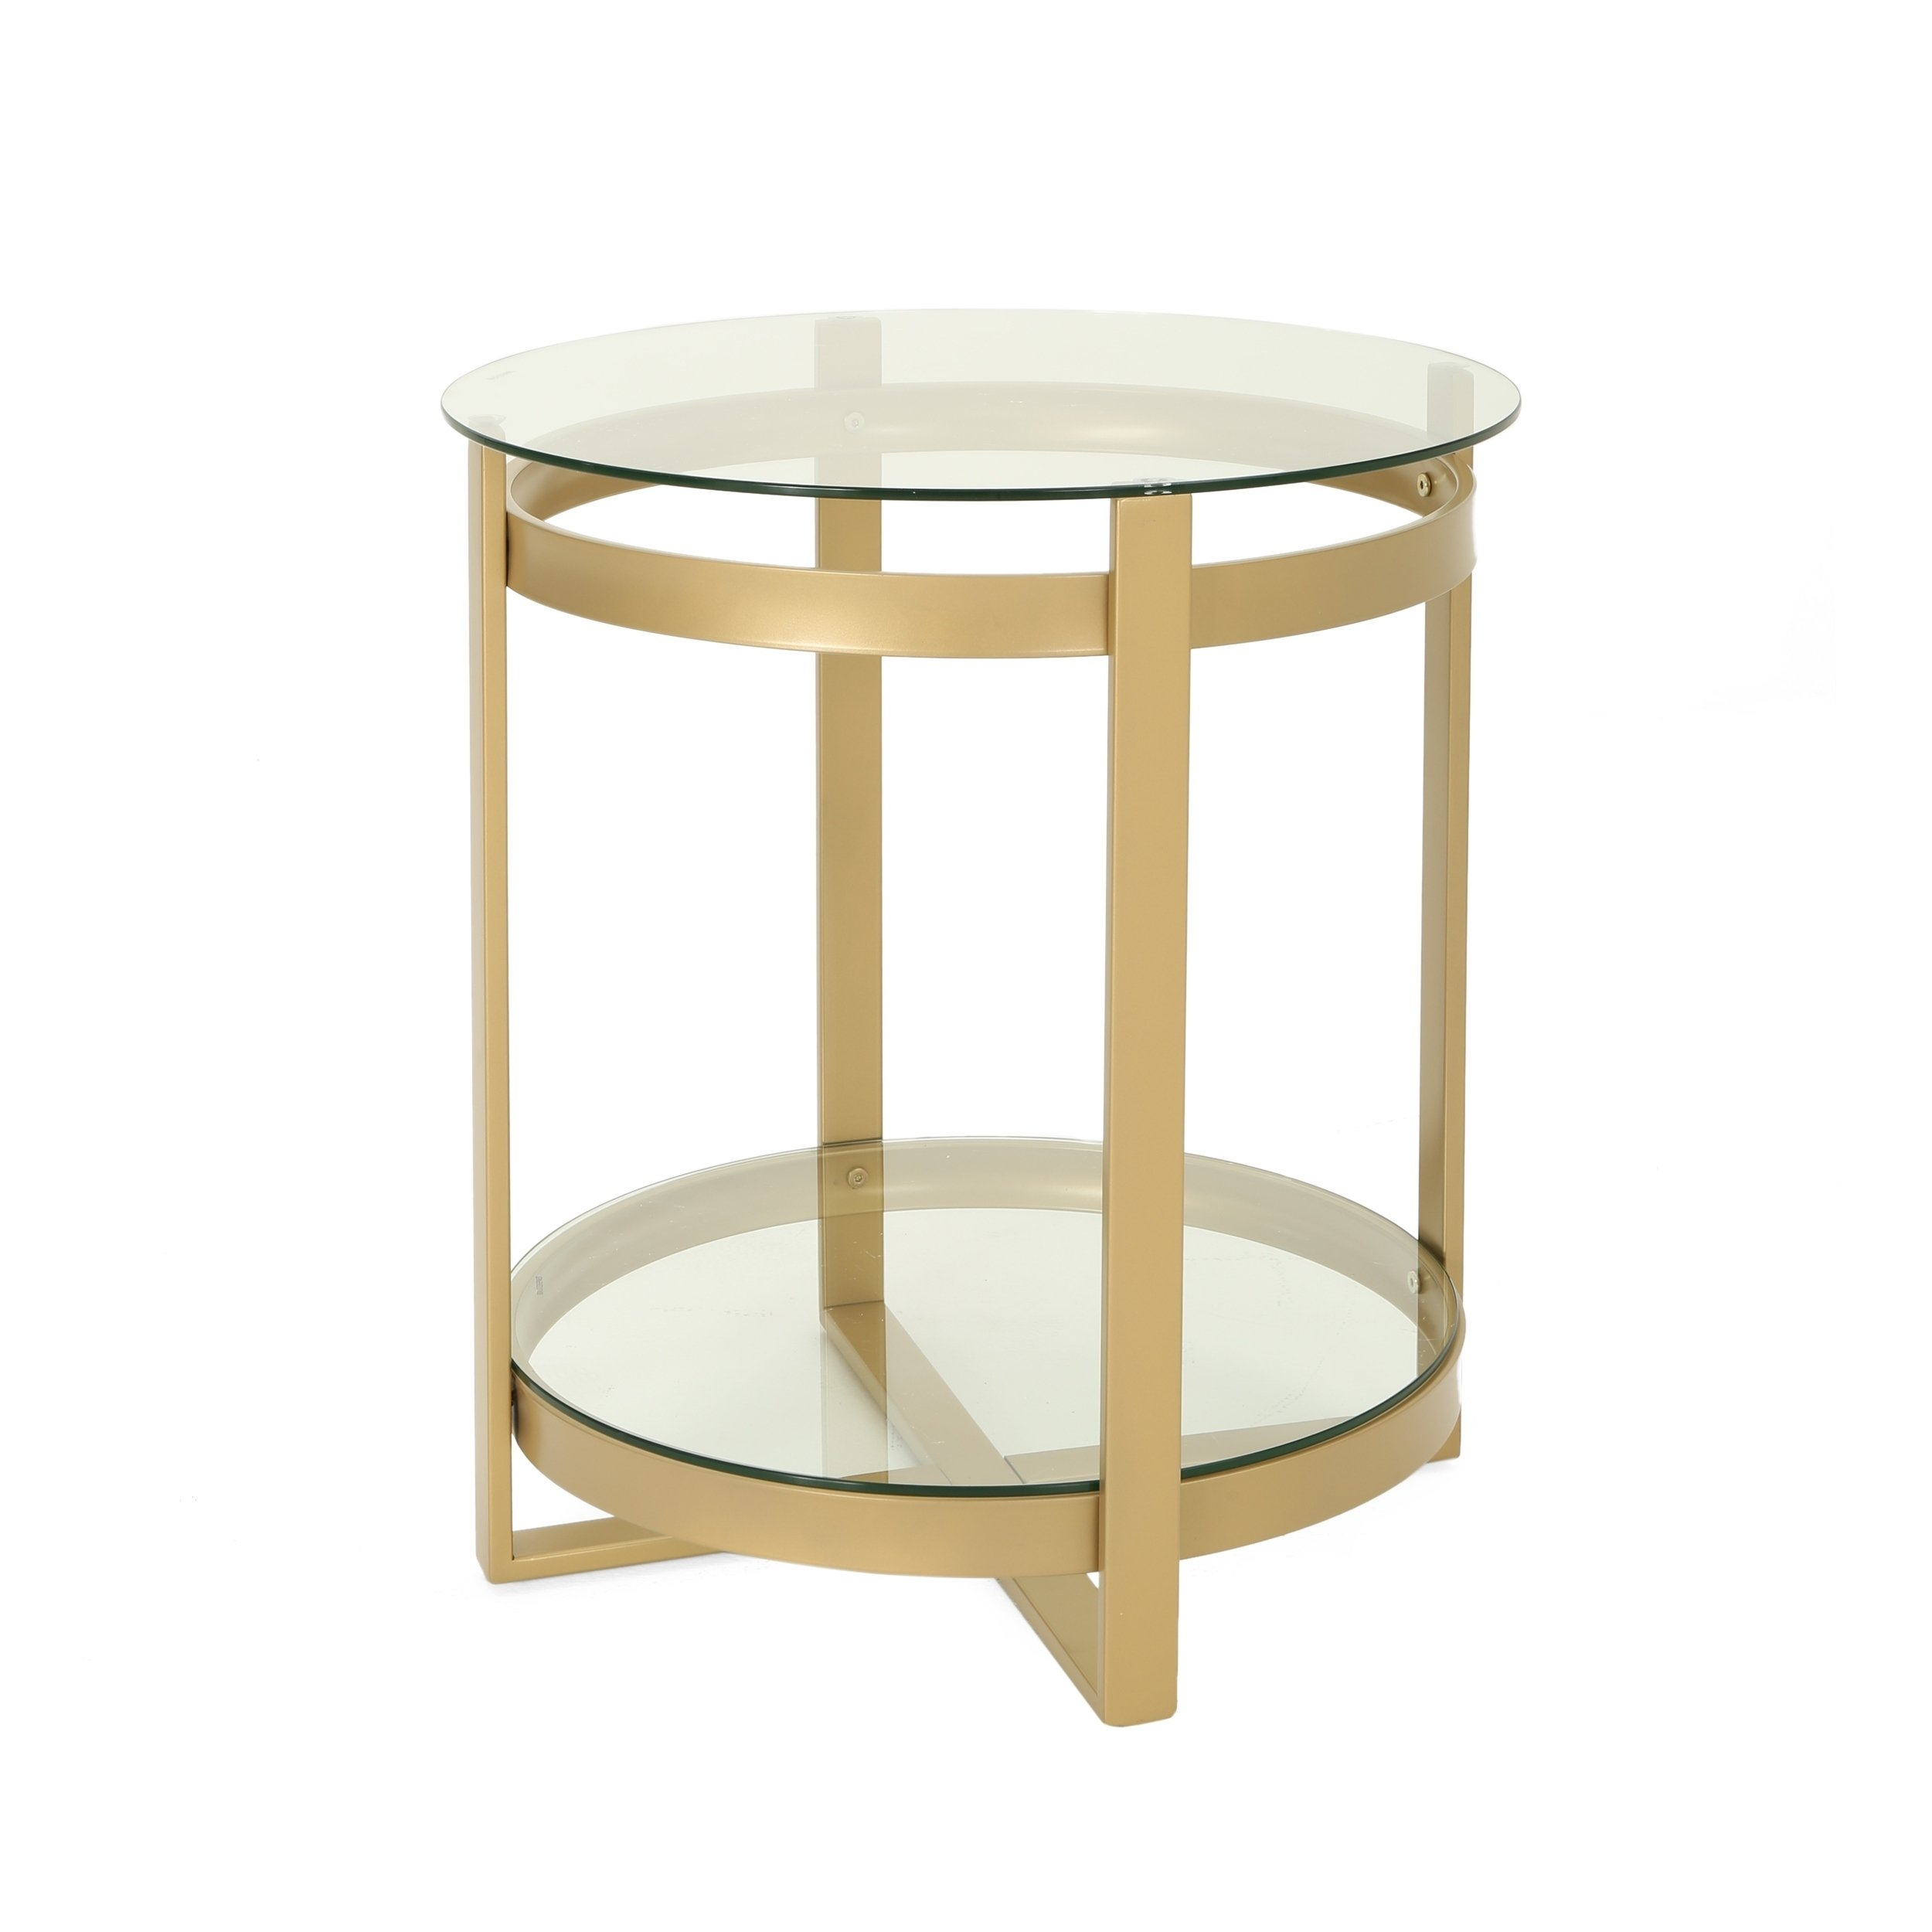 solidago modern round tempered glass coffee with iron frame christopher knight home accent table details about french small sofa toronto and chairs for spaces metal top end